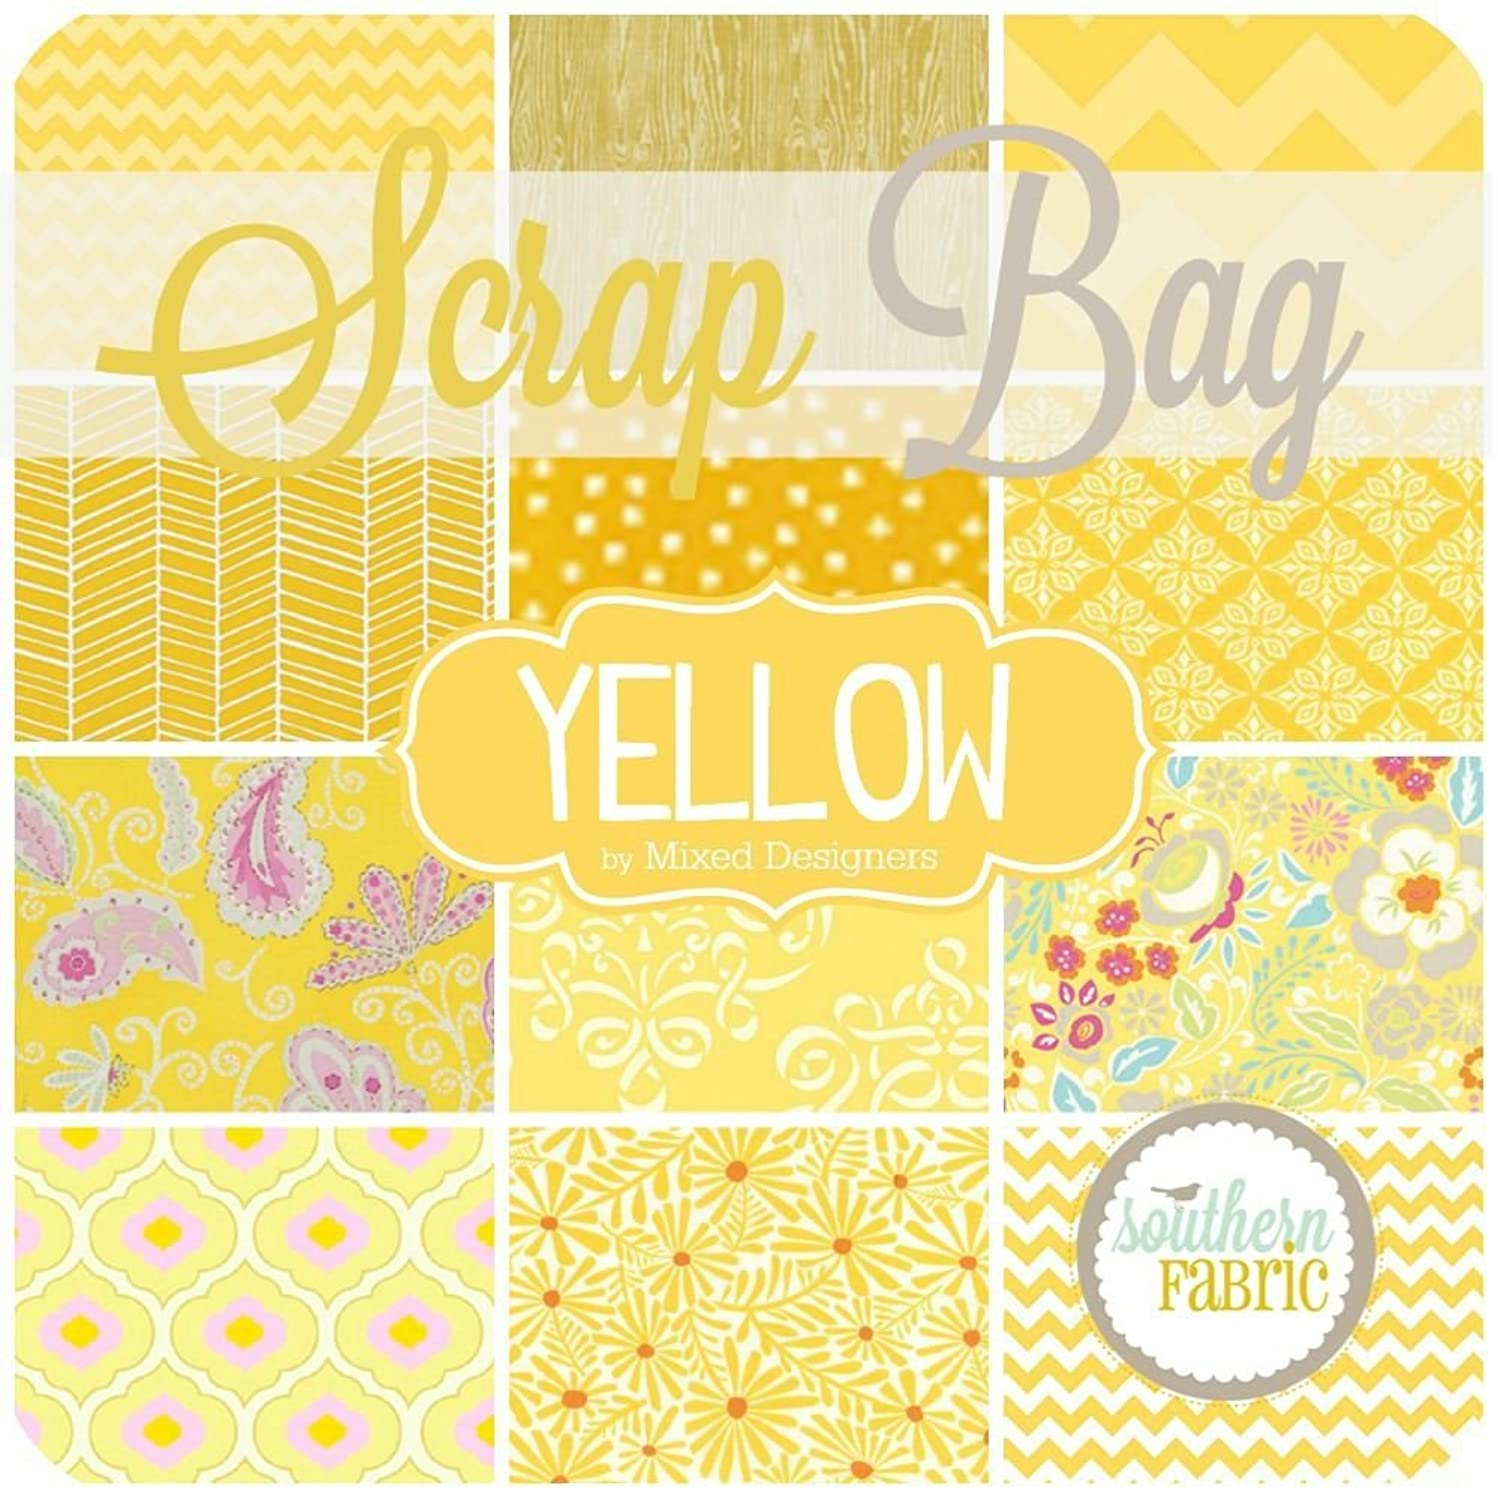 Southern Fabric Yellow Scrap Bag (Approx 2 Yards) by Mixed Designers DIY Quilt Fabric